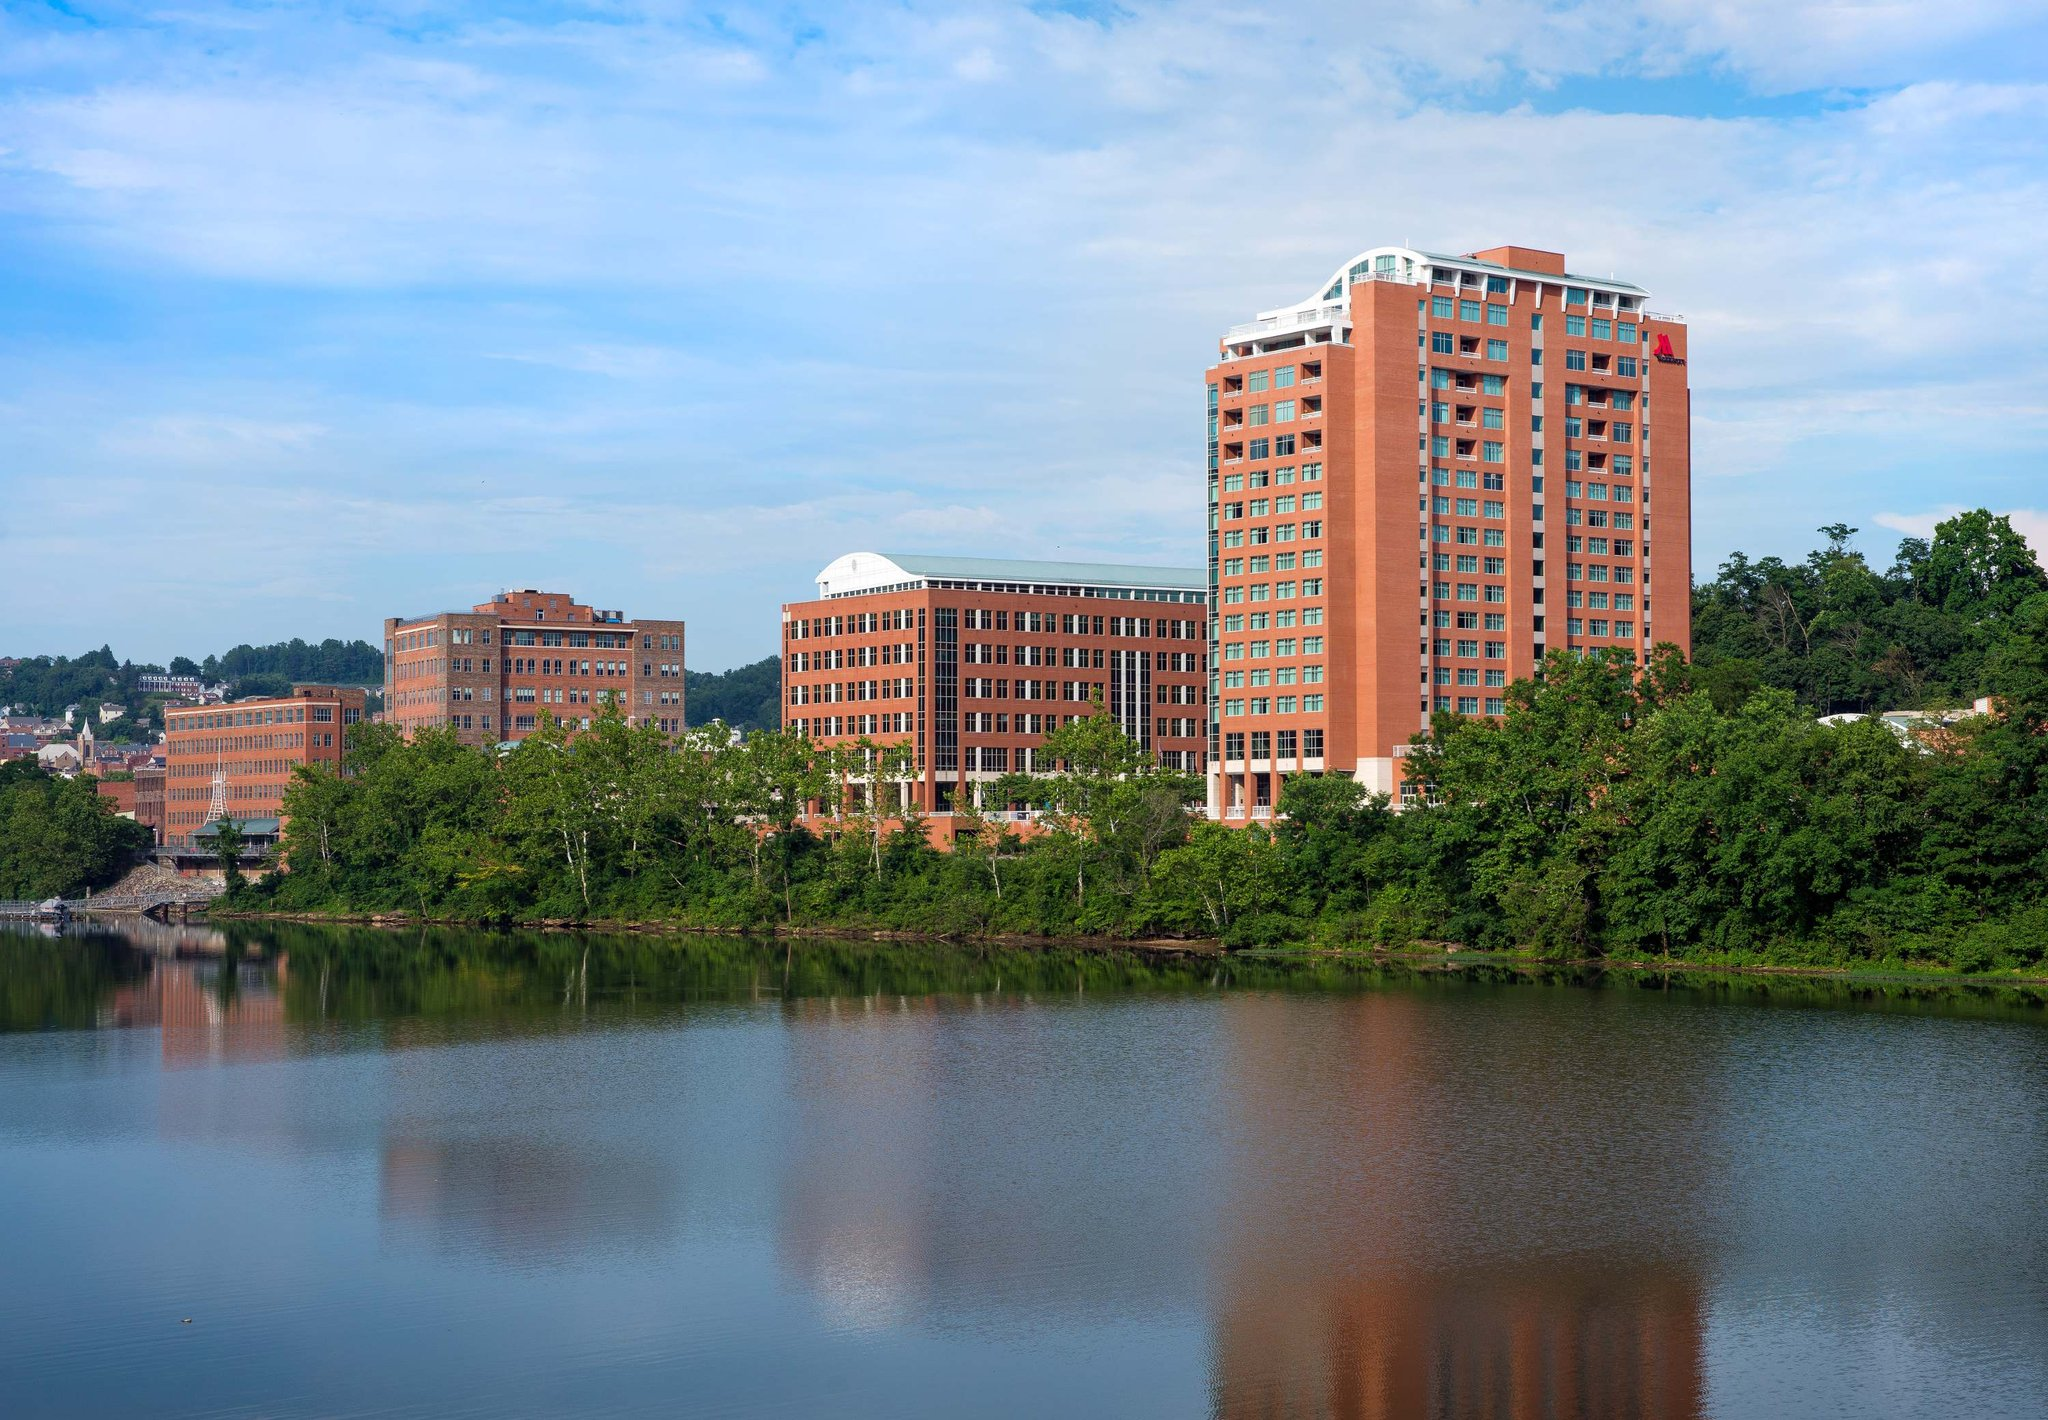 Meetings & Events at Morgantown Marriott at Waterfront Place